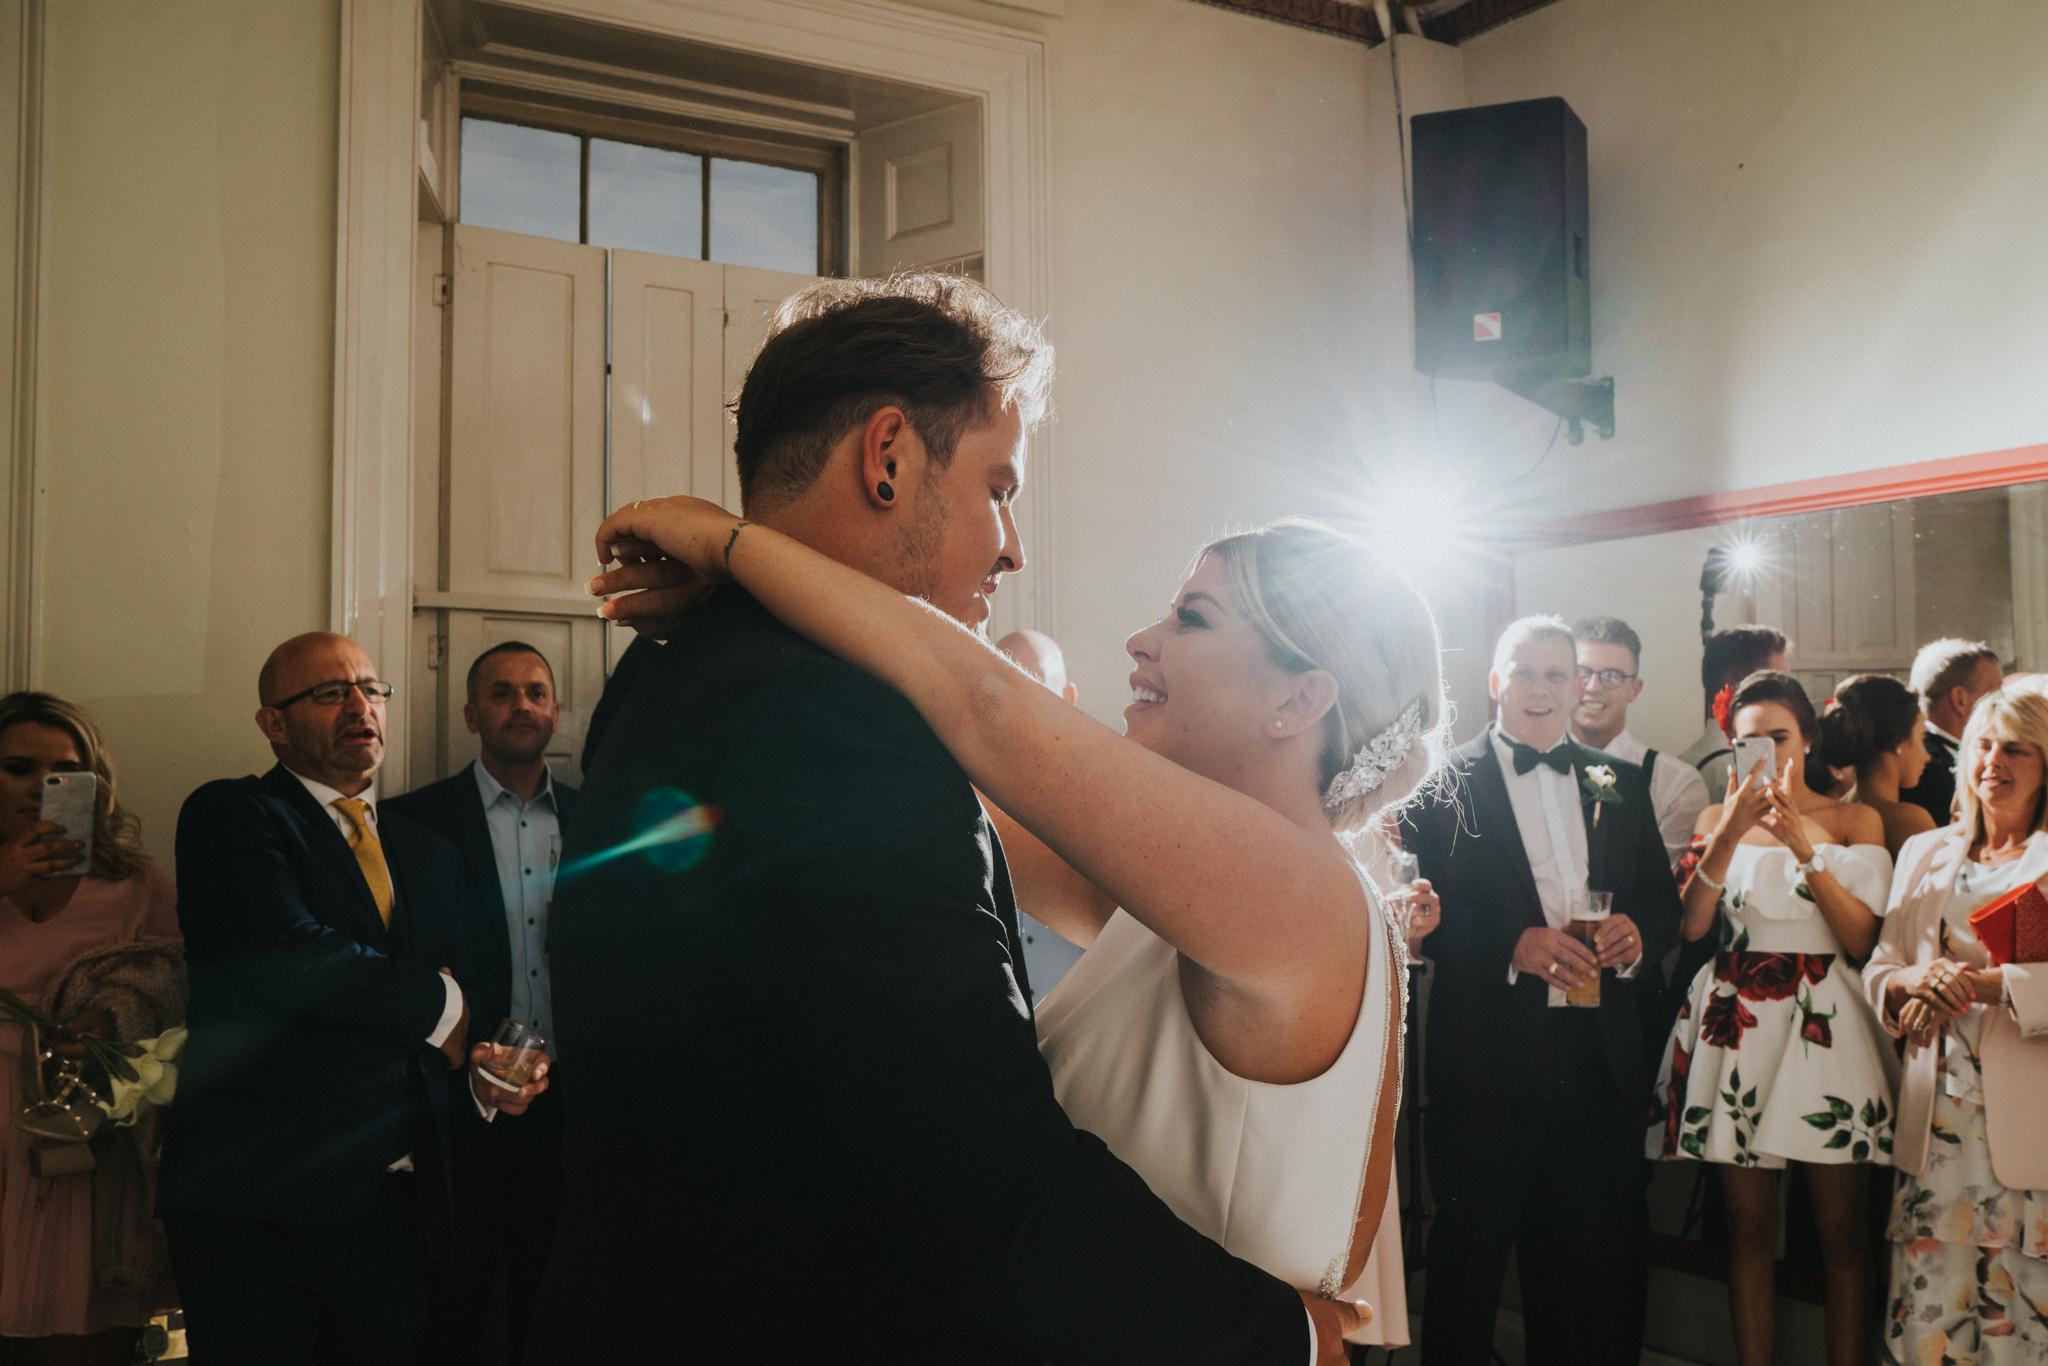 chloe-dan-gosfield-hall-wedding-photographer-grace-elizabeth-colchester-essex-alternative-wedding-photographer-suffolk-norfolk-devon (41 of 41).jpg